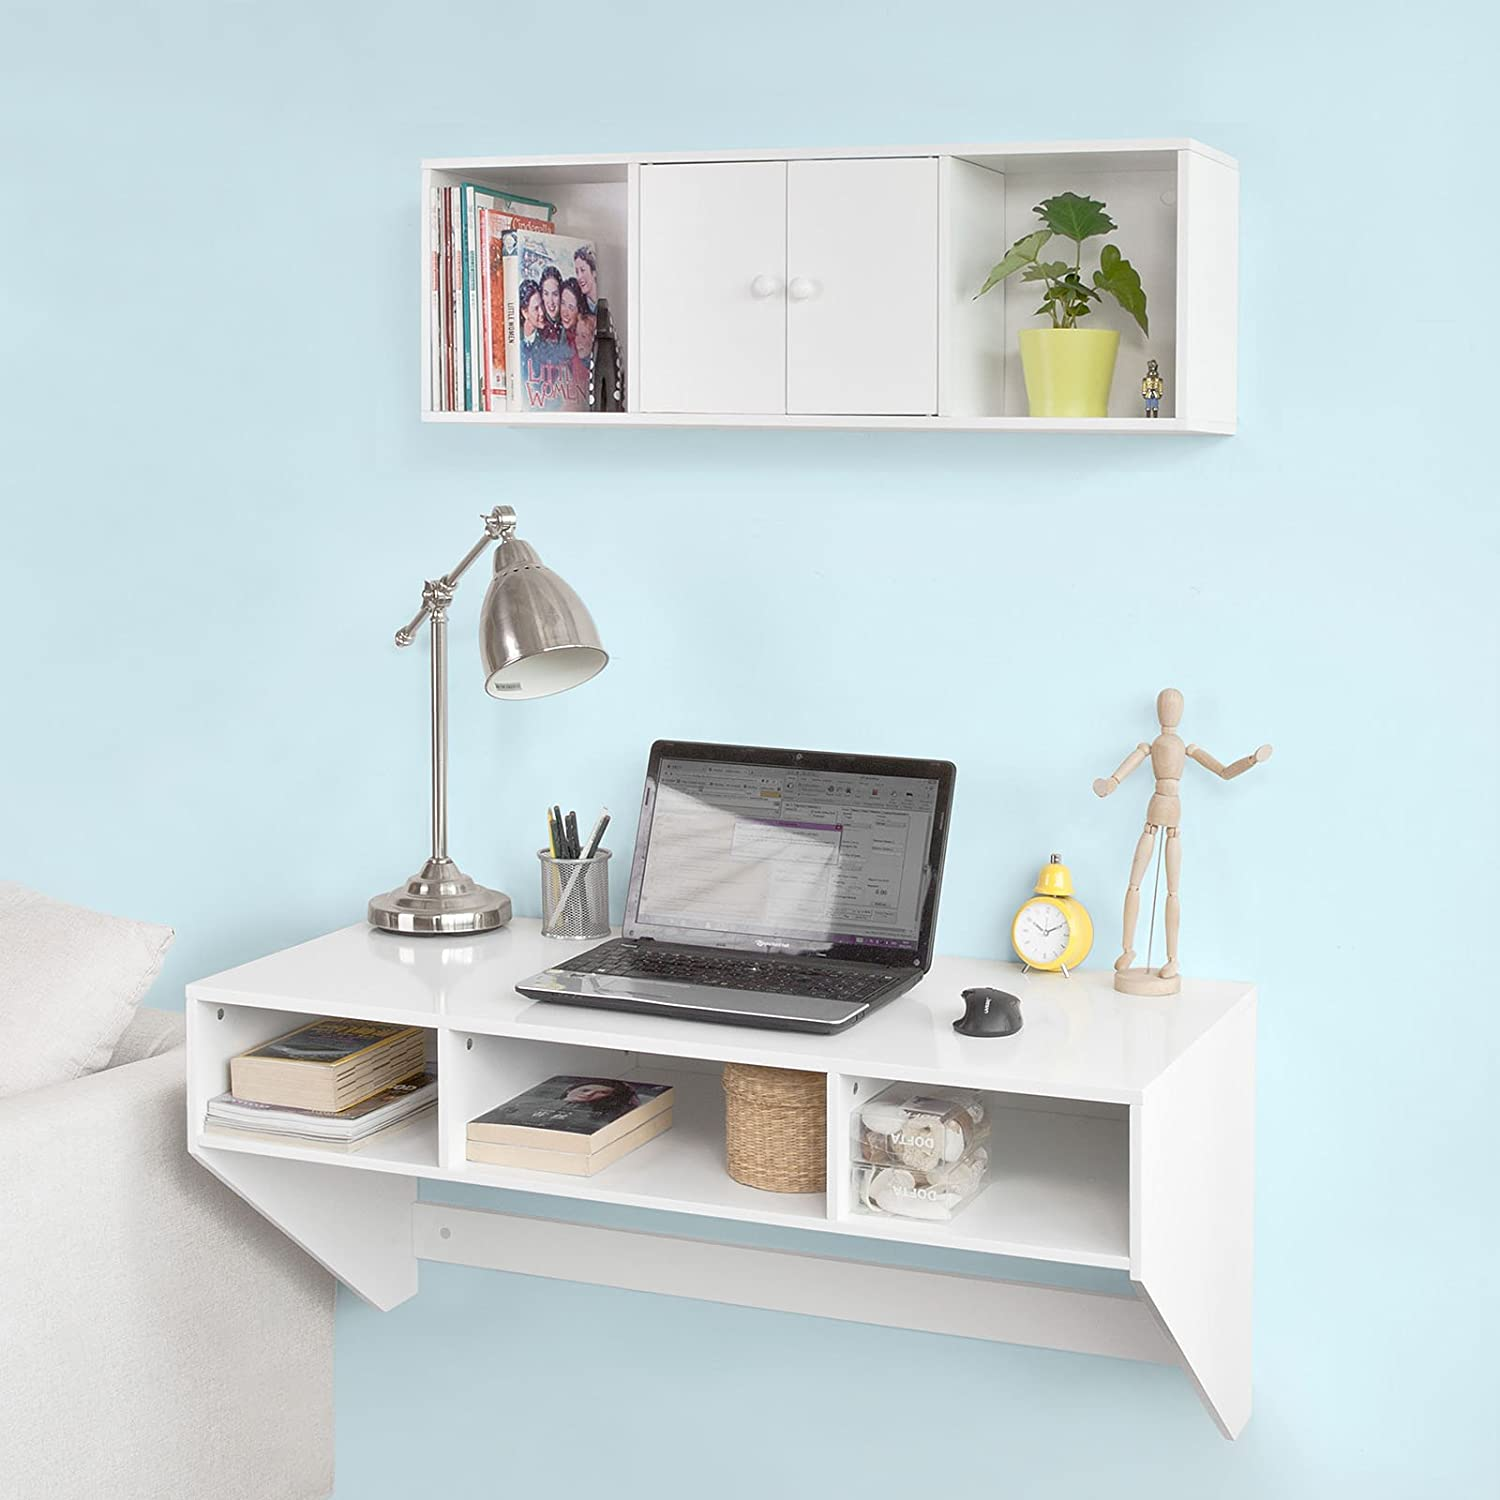 Amazon haotian wall mounted table deskhome office desk amazon haotian wall mounted table deskhome office desk workstationfloating desk with storagefwt14 wwhite kitchen dining amipublicfo Choice Image